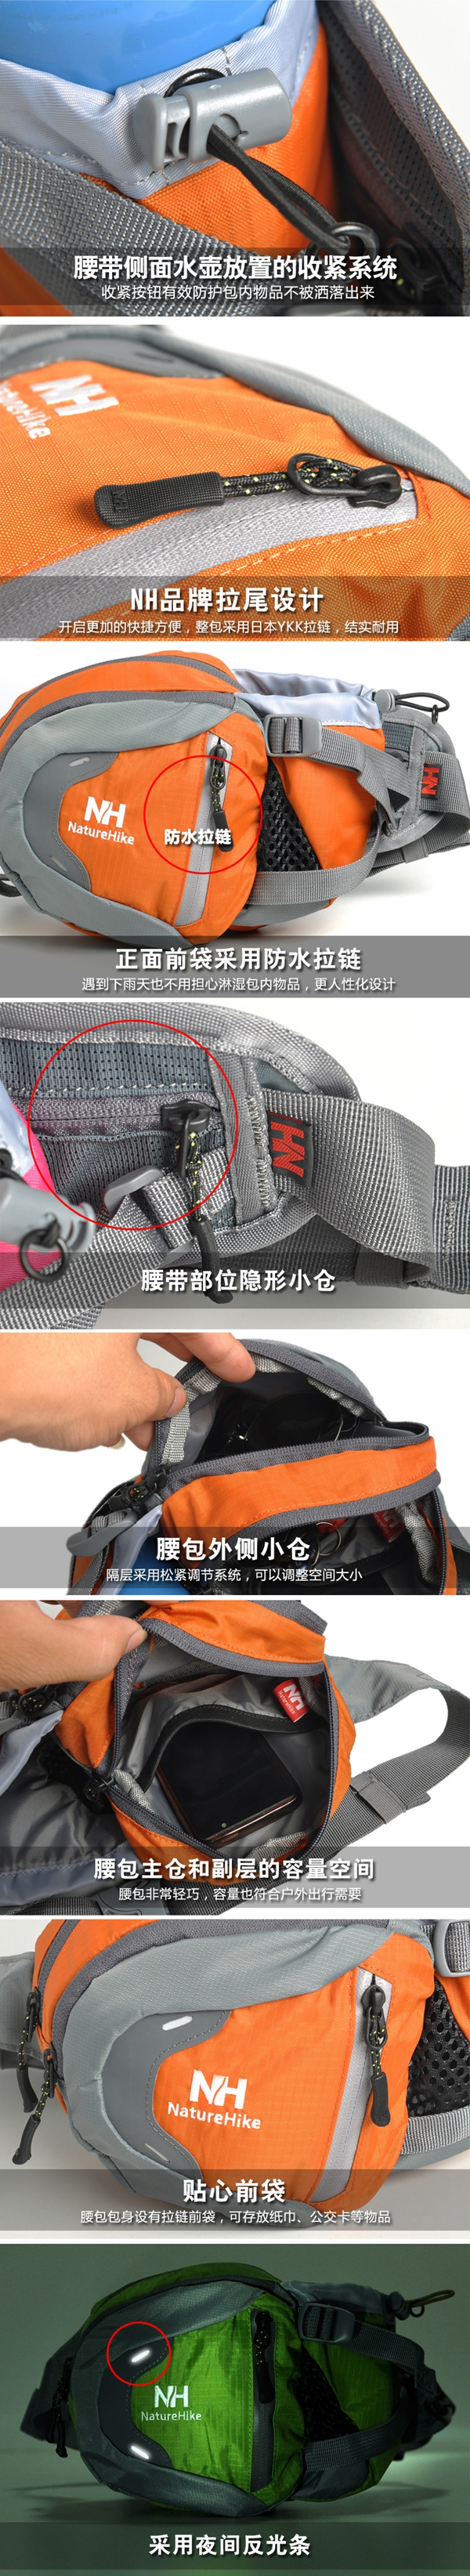 -waterproof-outdoor-sport-hiking-waist-pack-bag-d1